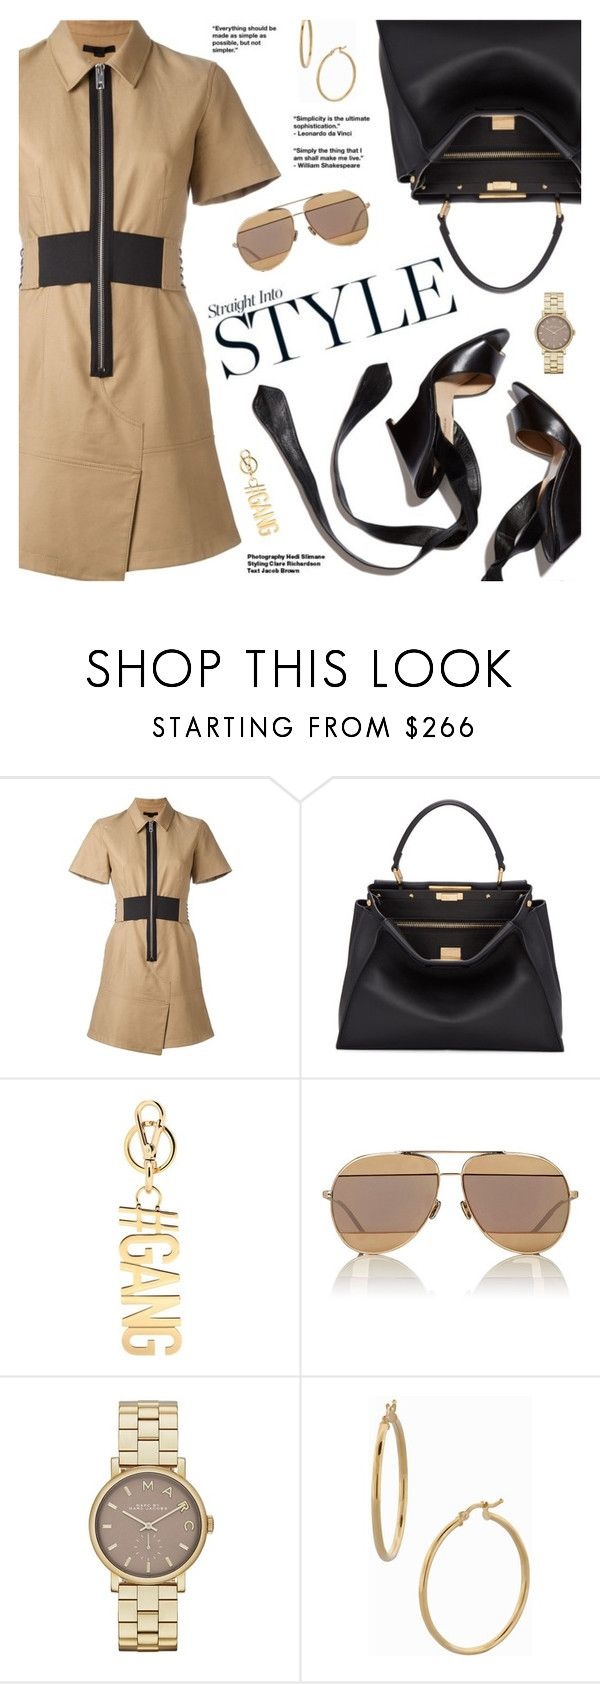 """""""Straight Into Style"""" by pokadoll ❤ liked on Polyvore featuring Alexander Wang, Fendi, Givenchy, Hedi Slimane, Christian Dior, Marc Jacobs, Bony Levy, polyvoreeditorial and polyvoreset"""